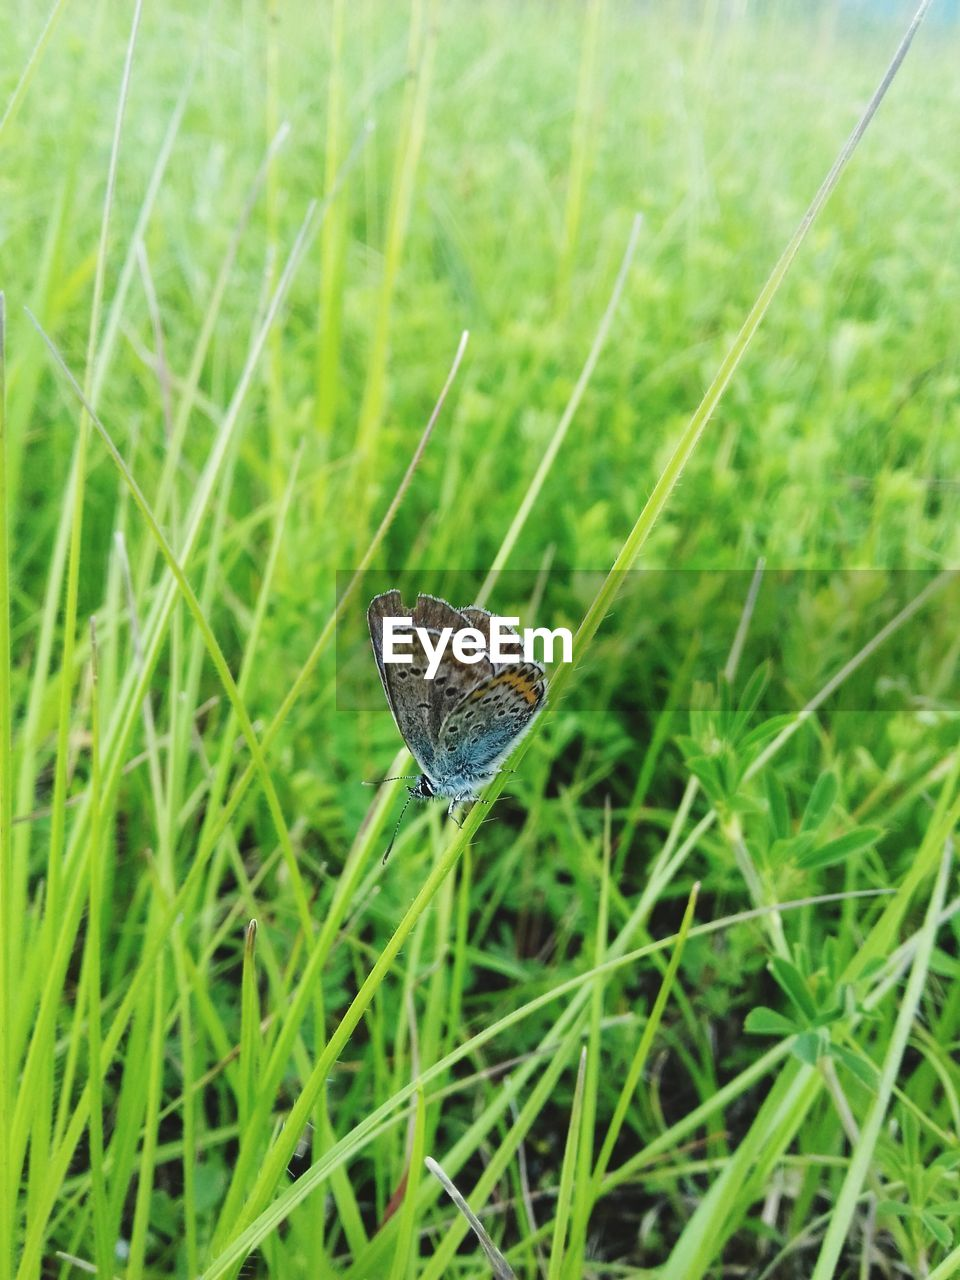 grass, plant, green color, growth, animal themes, animal wildlife, one animal, animal, nature, invertebrate, animals in the wild, day, close-up, field, no people, beauty in nature, land, selective focus, insect, focus on foreground, animal wing, butterfly, blade of grass, butterfly - insect, dew